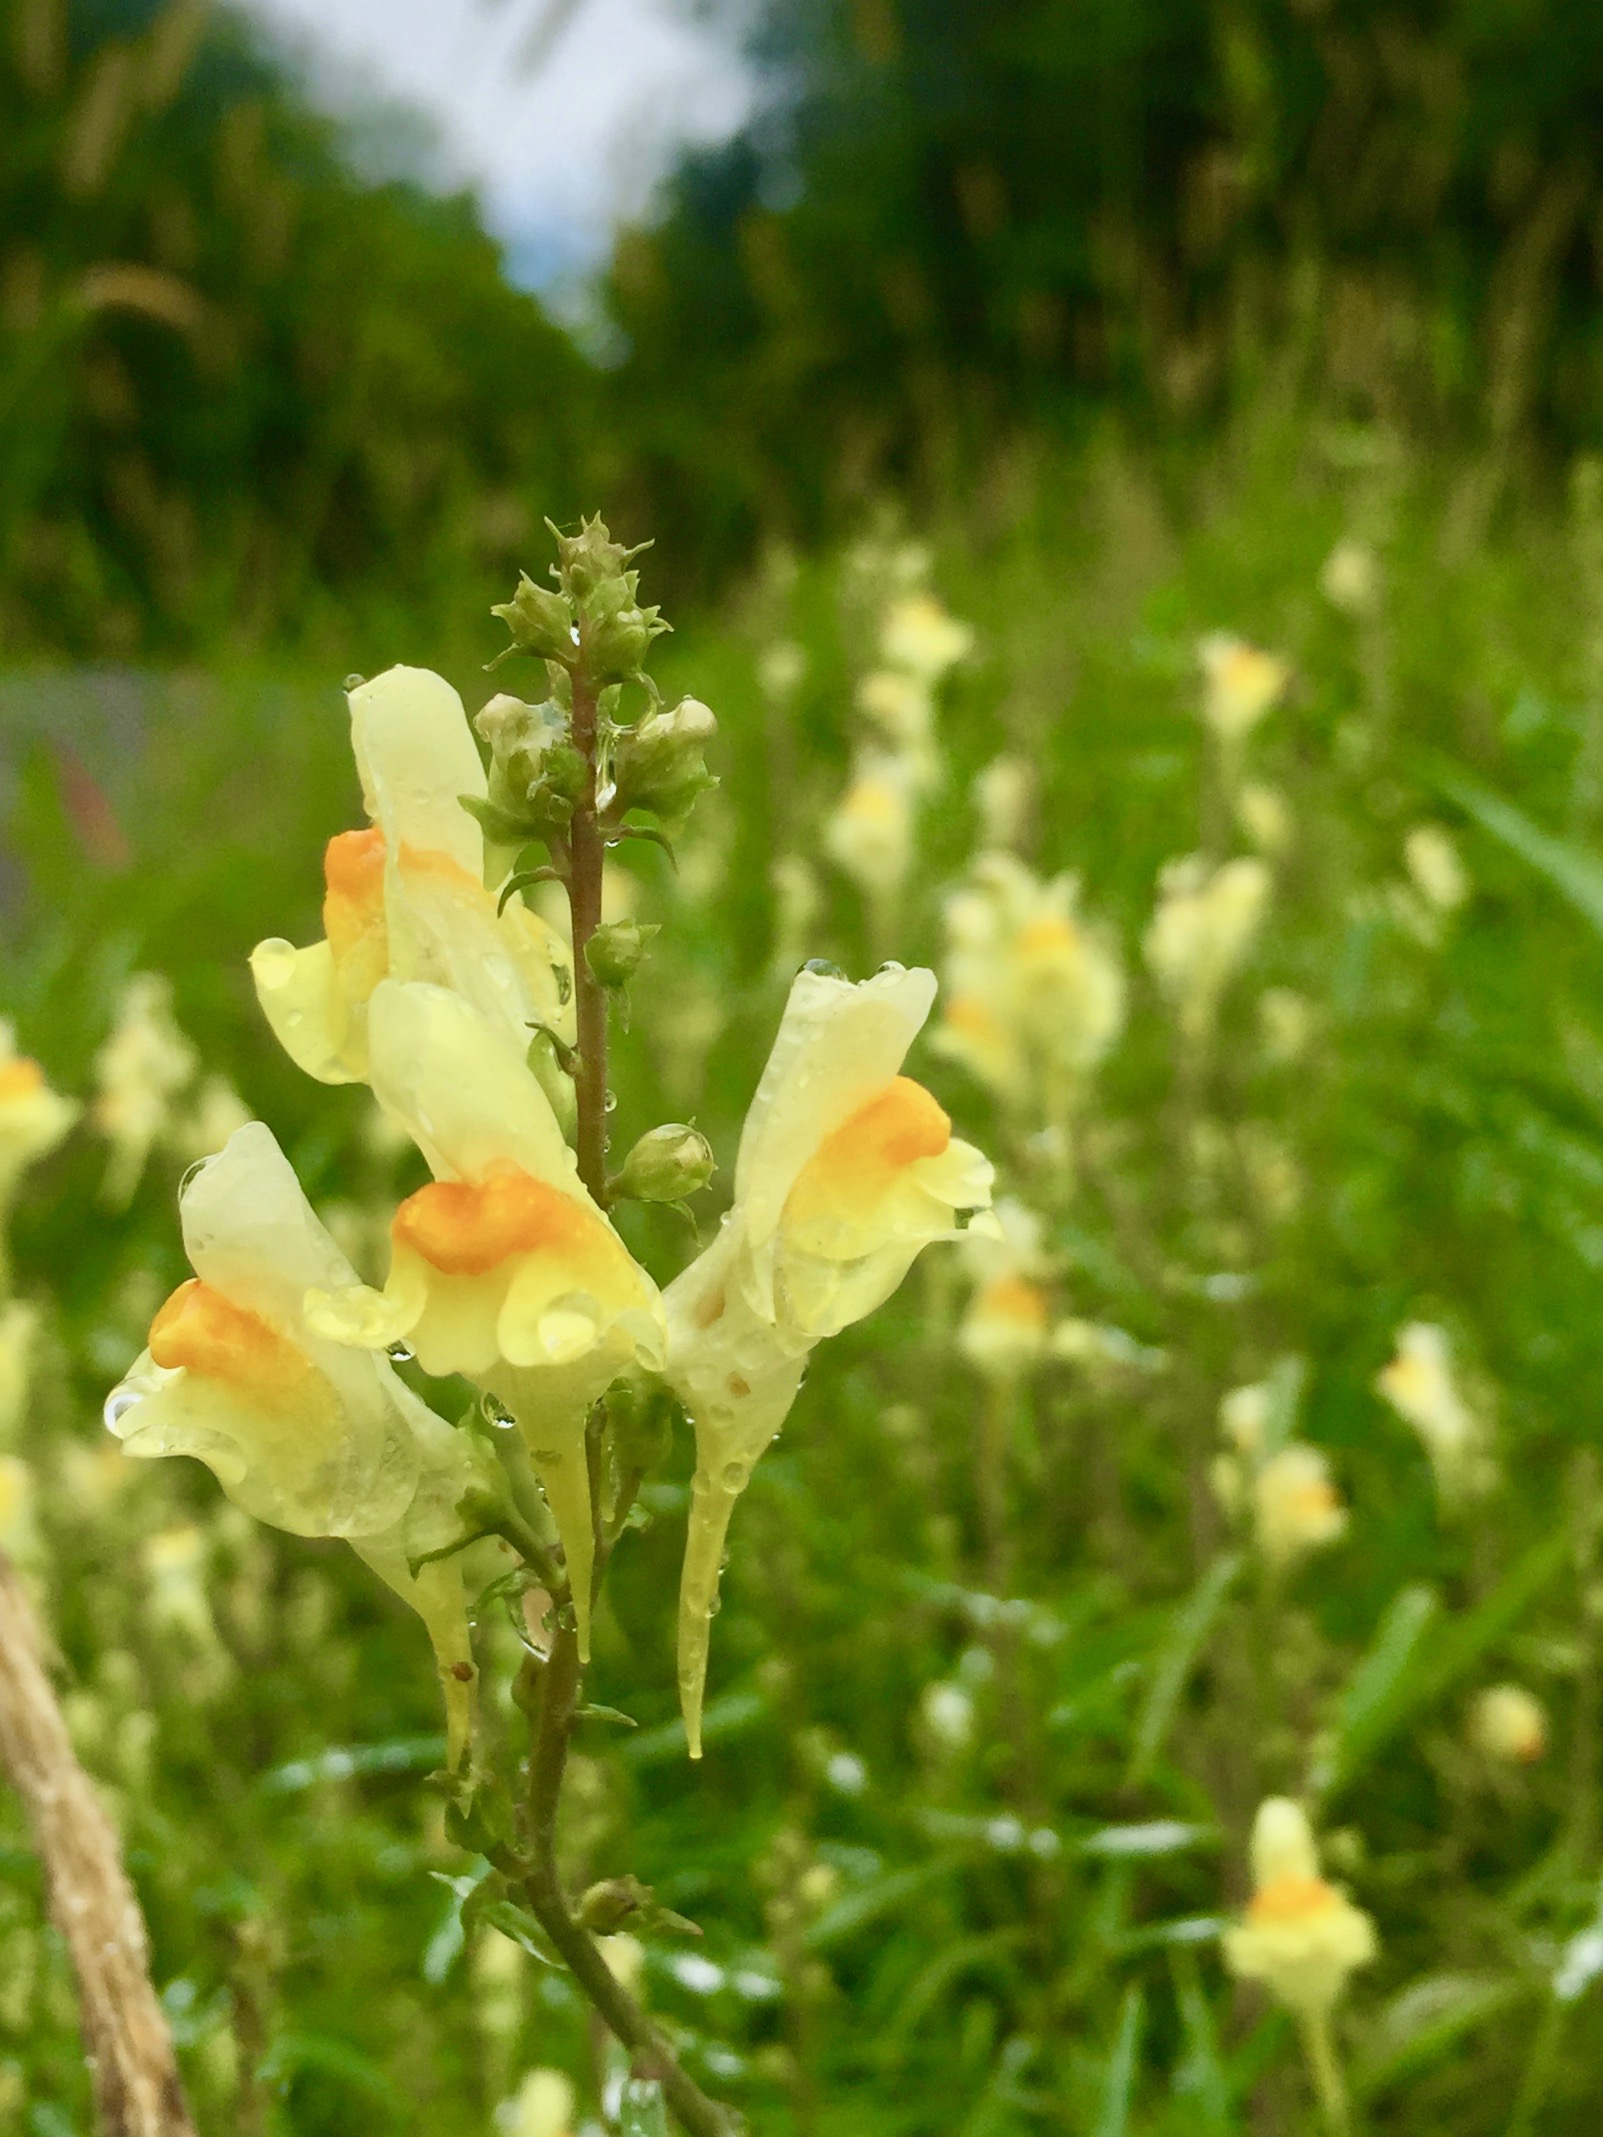 Wild yellow snapdragon (a.k.a yellow toadflax or butter-and-eggs) already grows on our meadow.